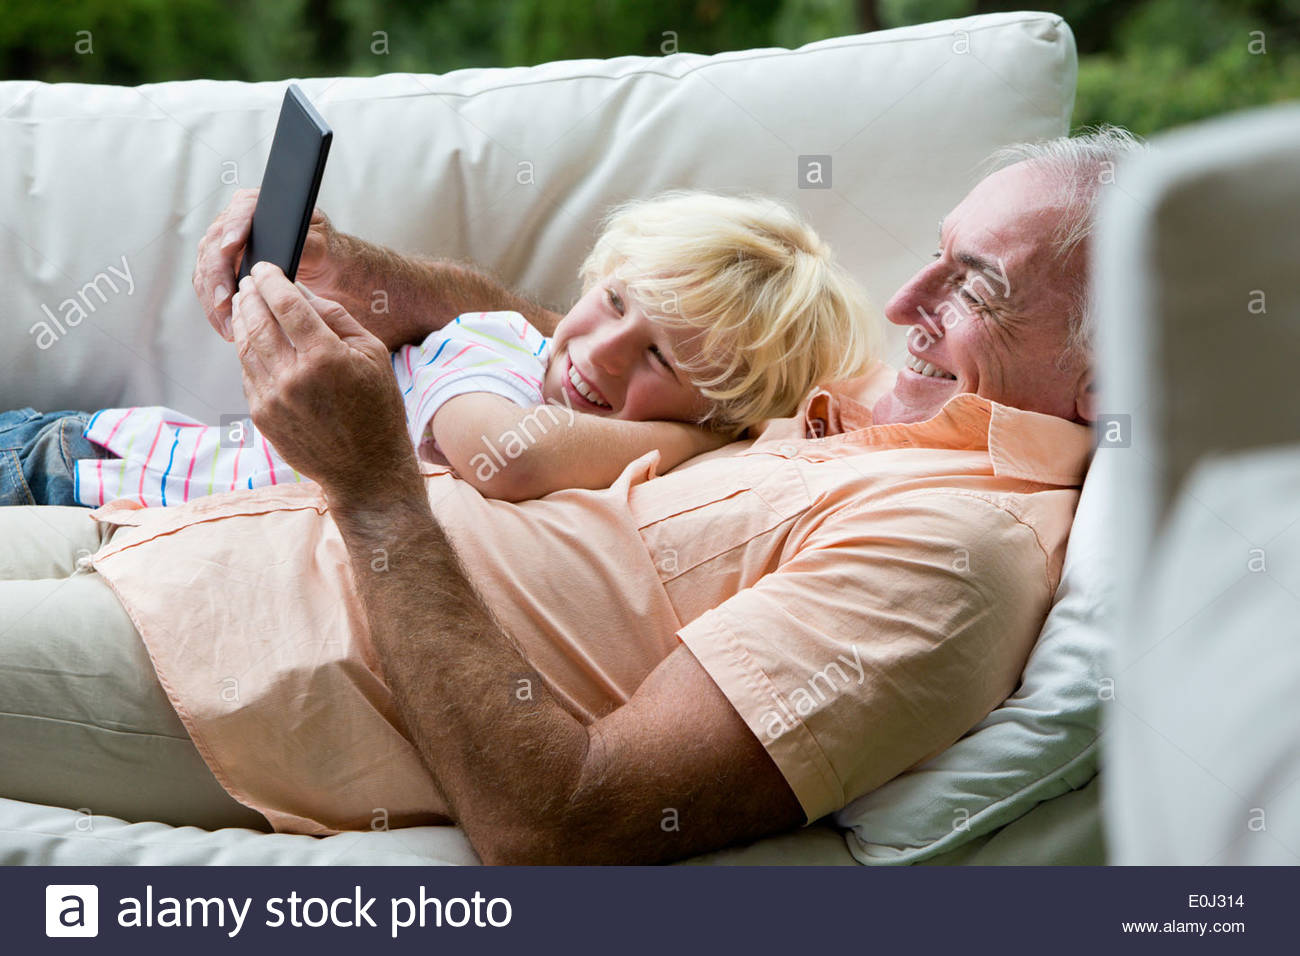 Smiling grandfather and grandson portant sur canapé outdoor with digital tablet Photo Stock